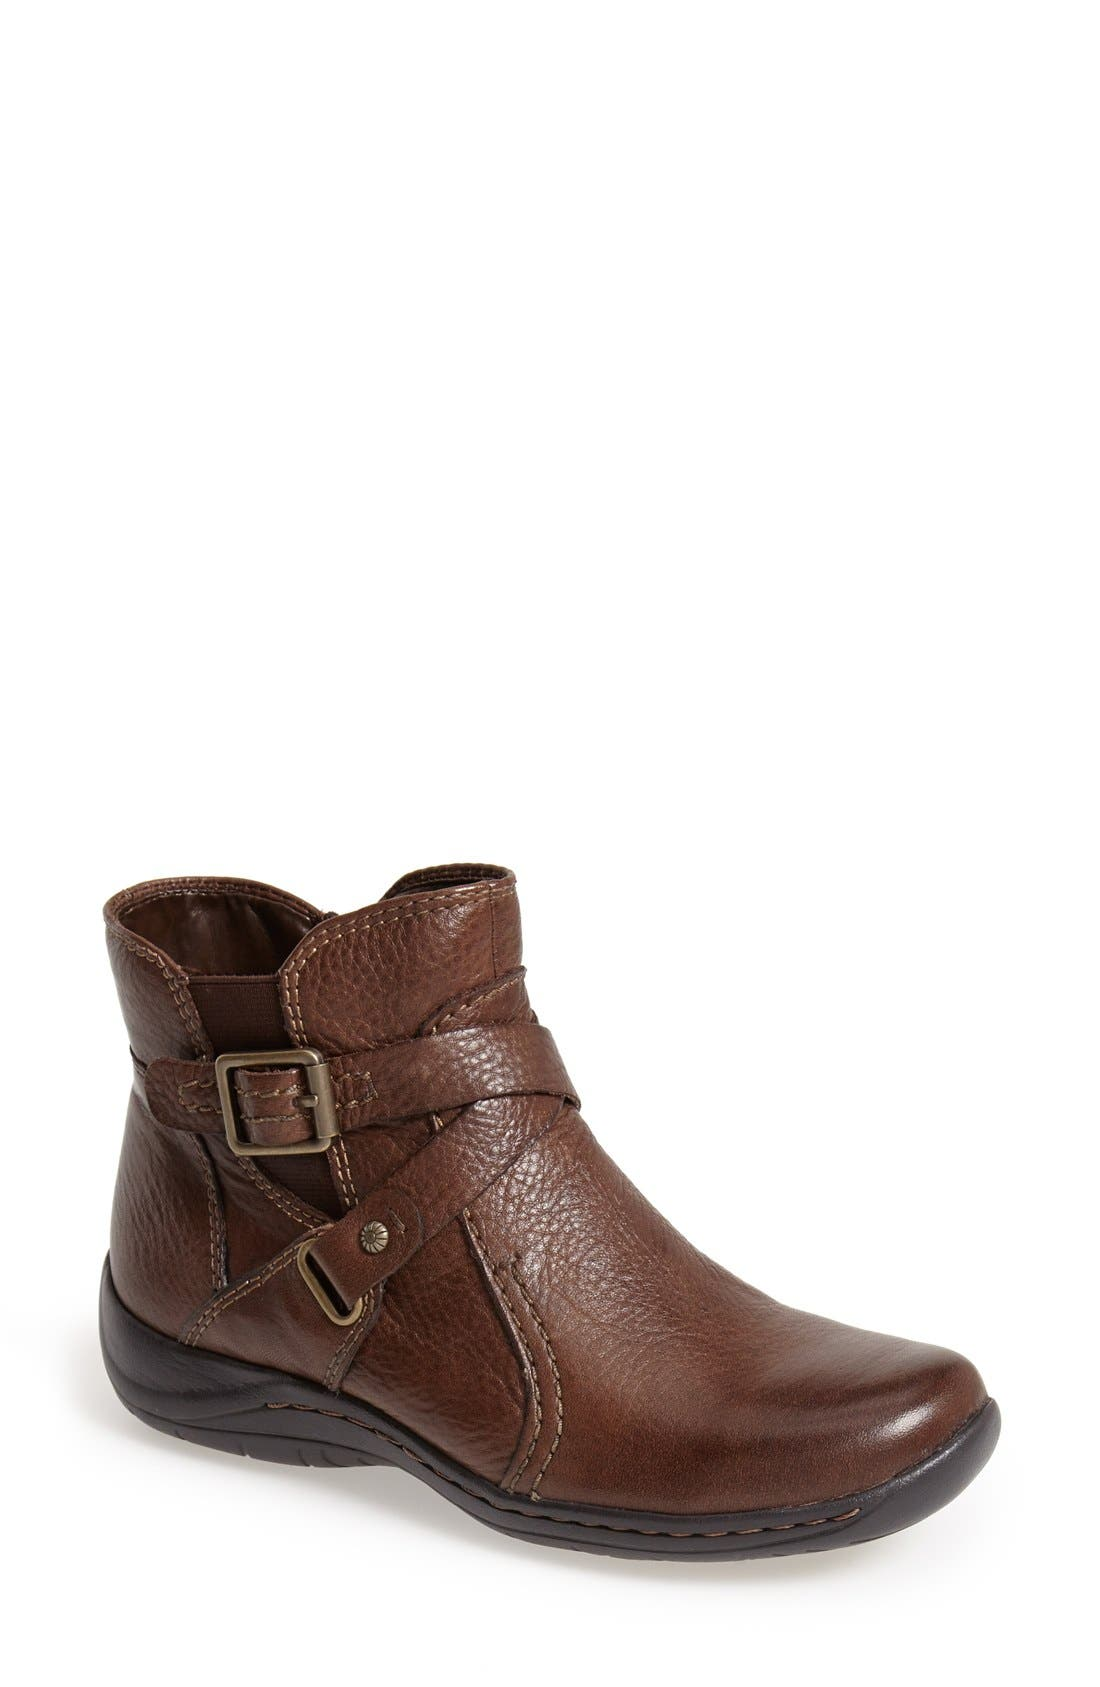 Main Image - Earth® 'Ironwood' Leather Bootie (Women)